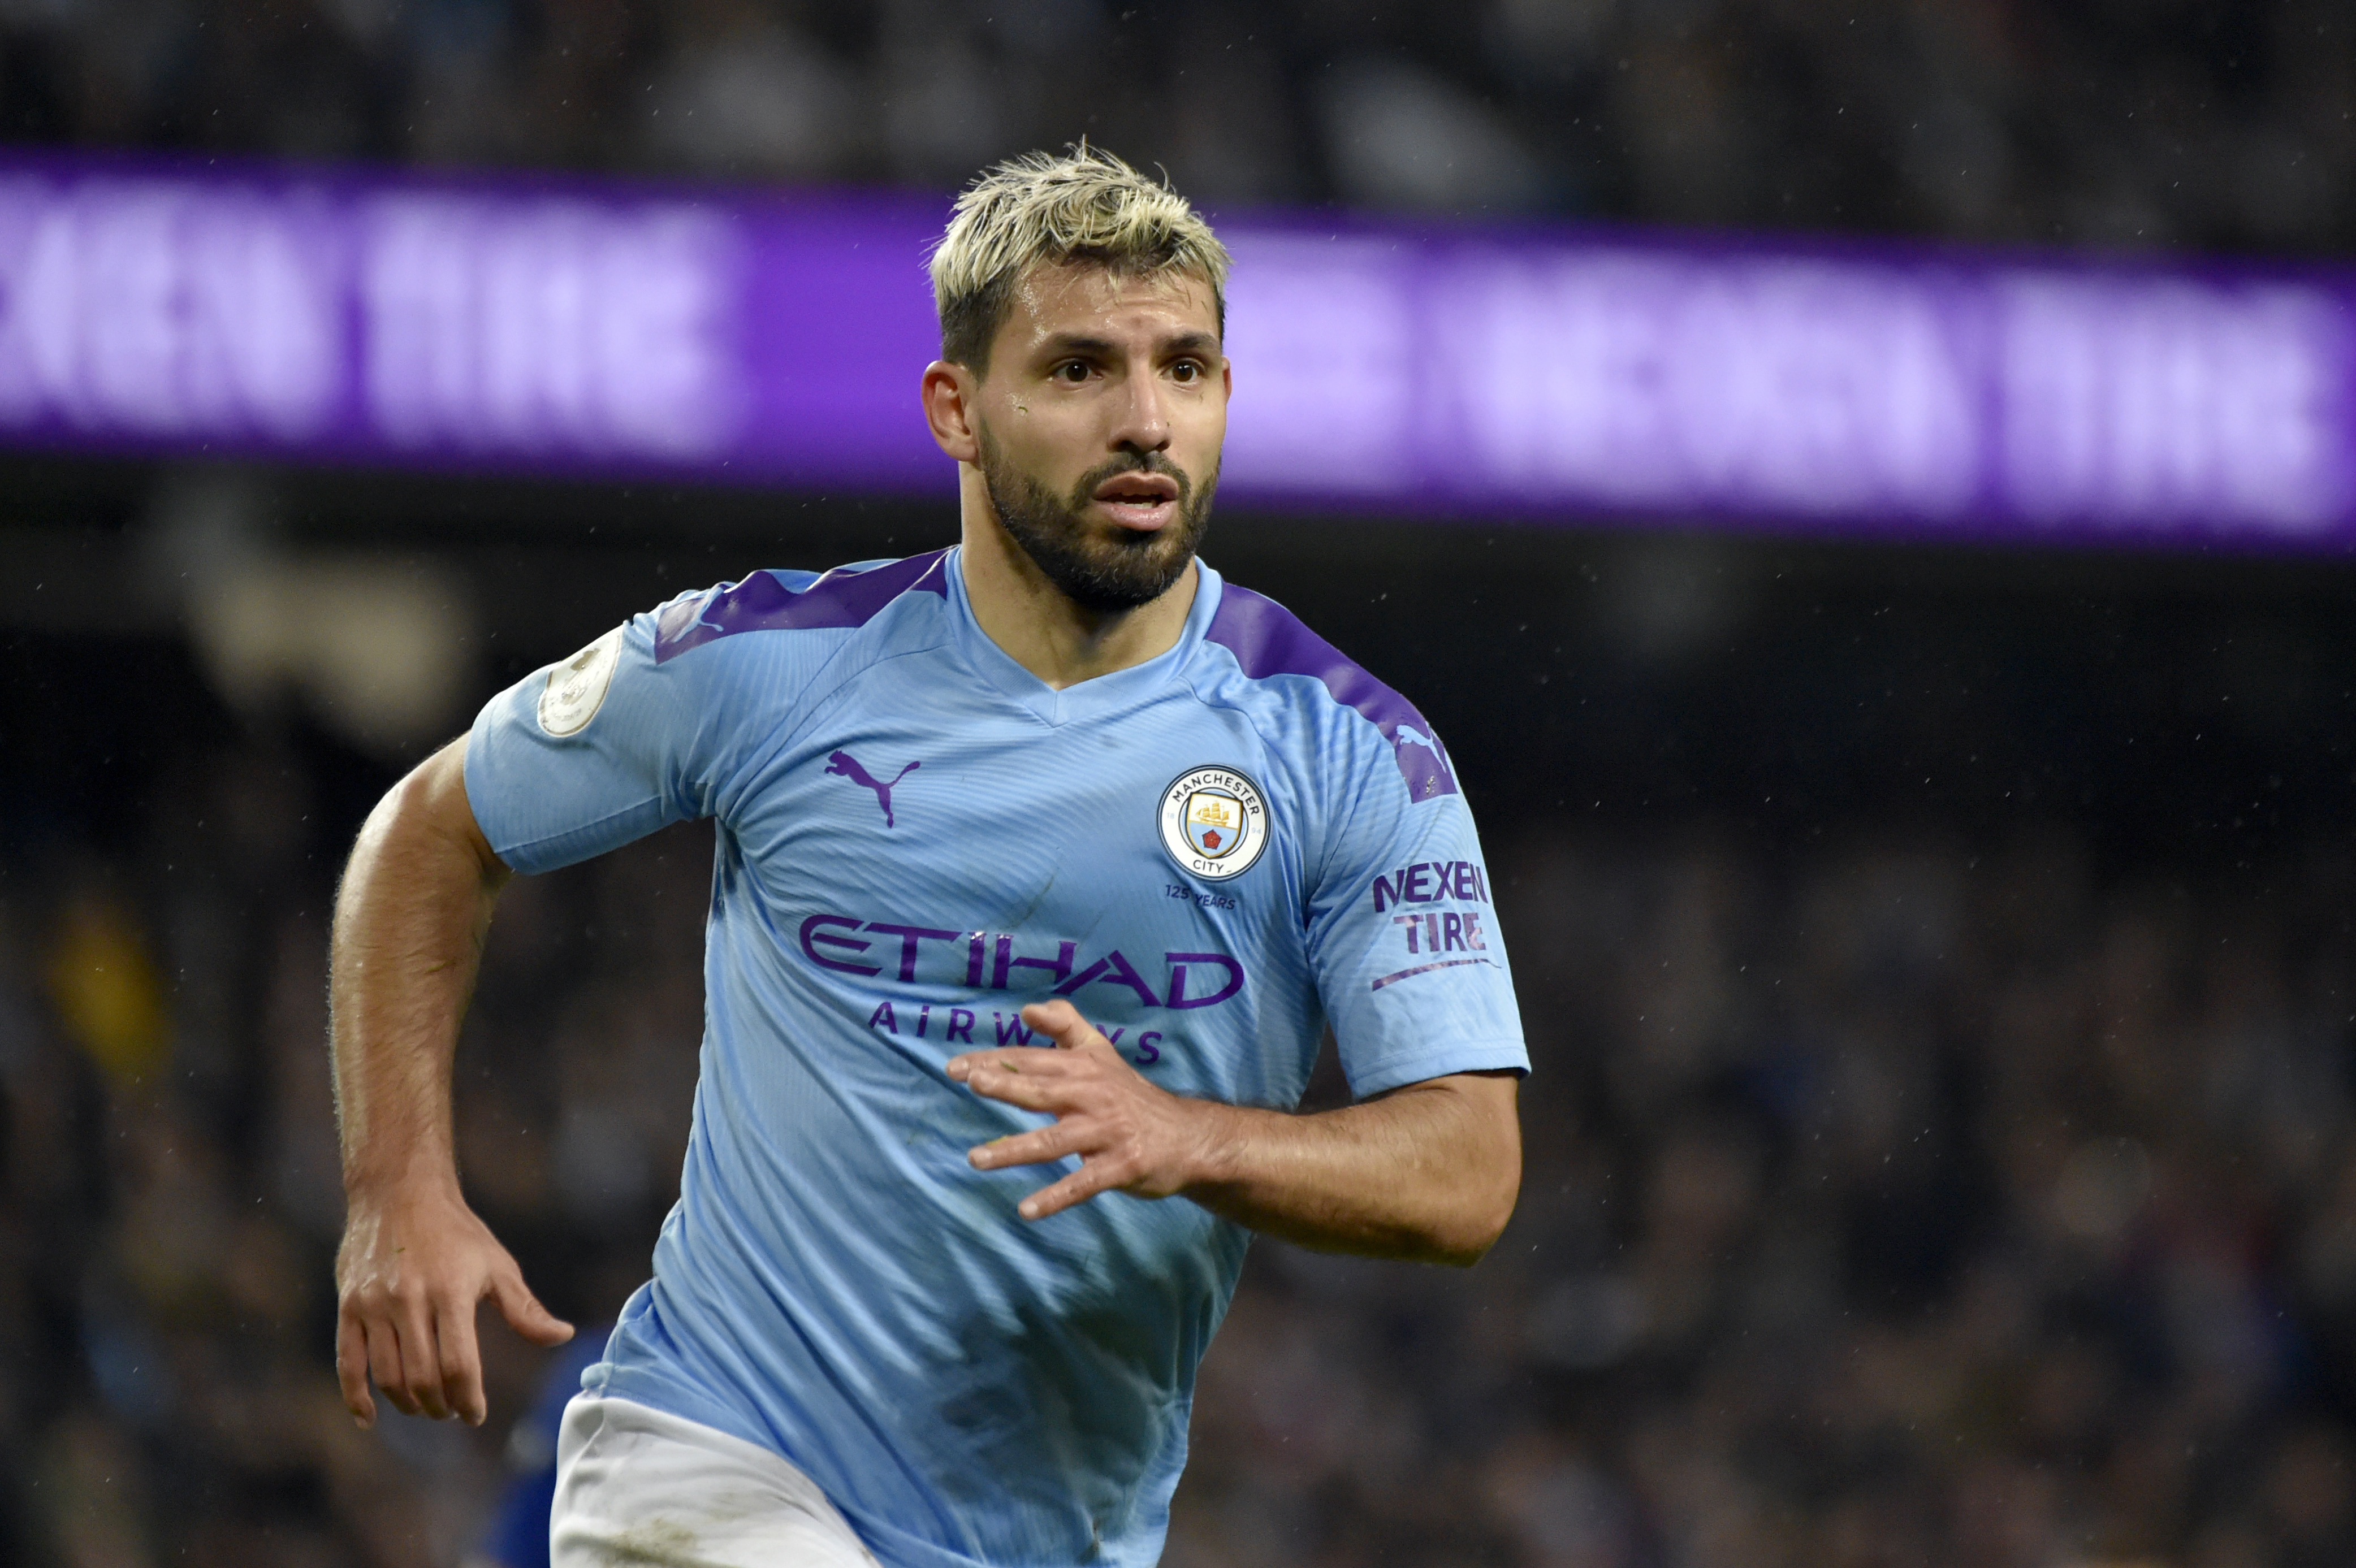 Injured Aguero to miss Manchester derby, says Guardiola